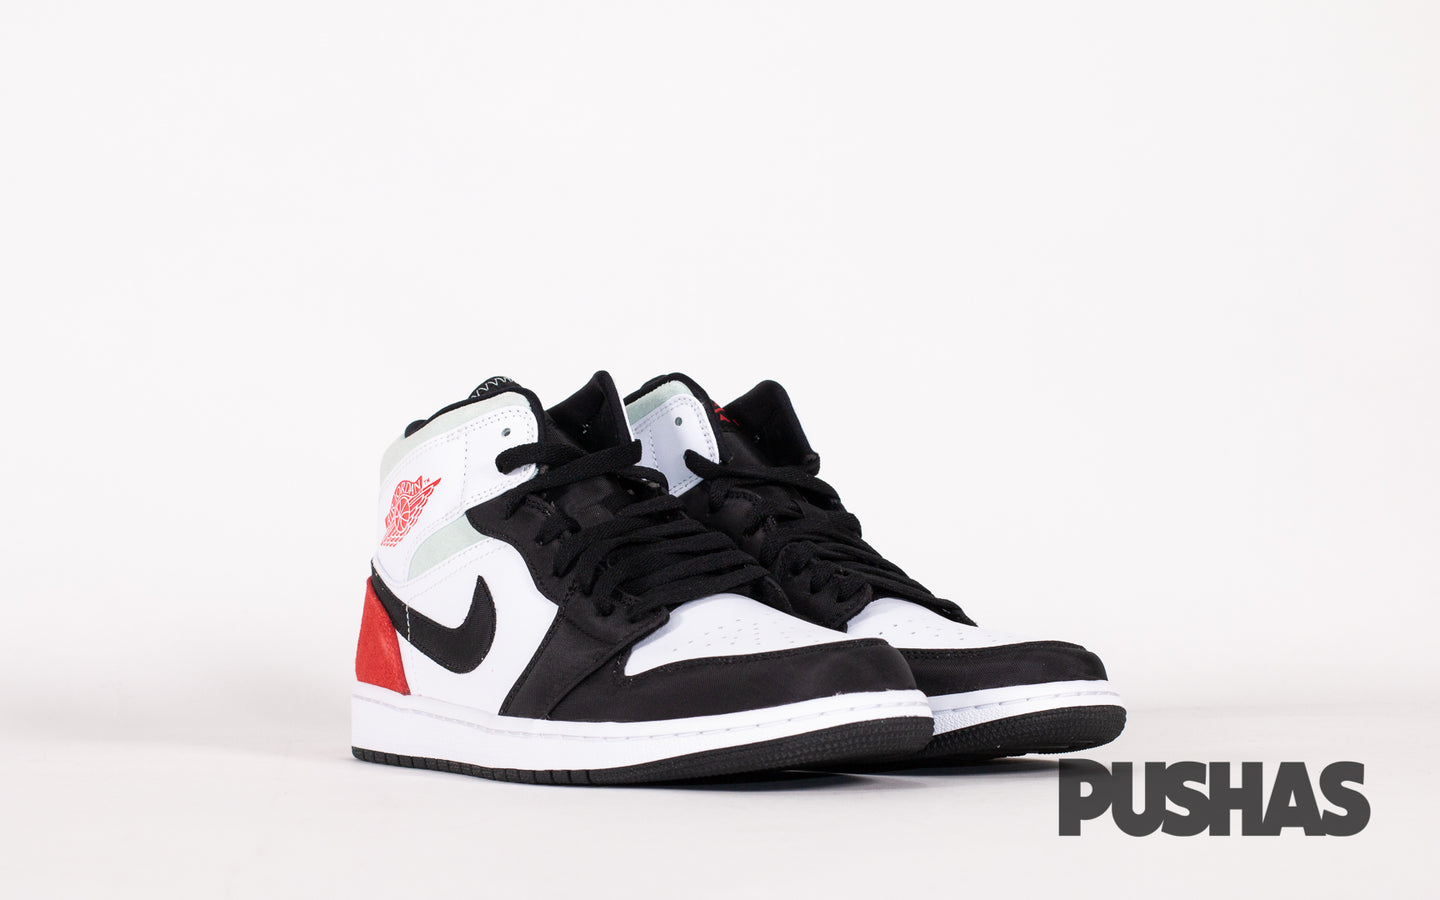 pushas-nike-Air-Jordan-1-Mid-SE-Union-Black-Toe